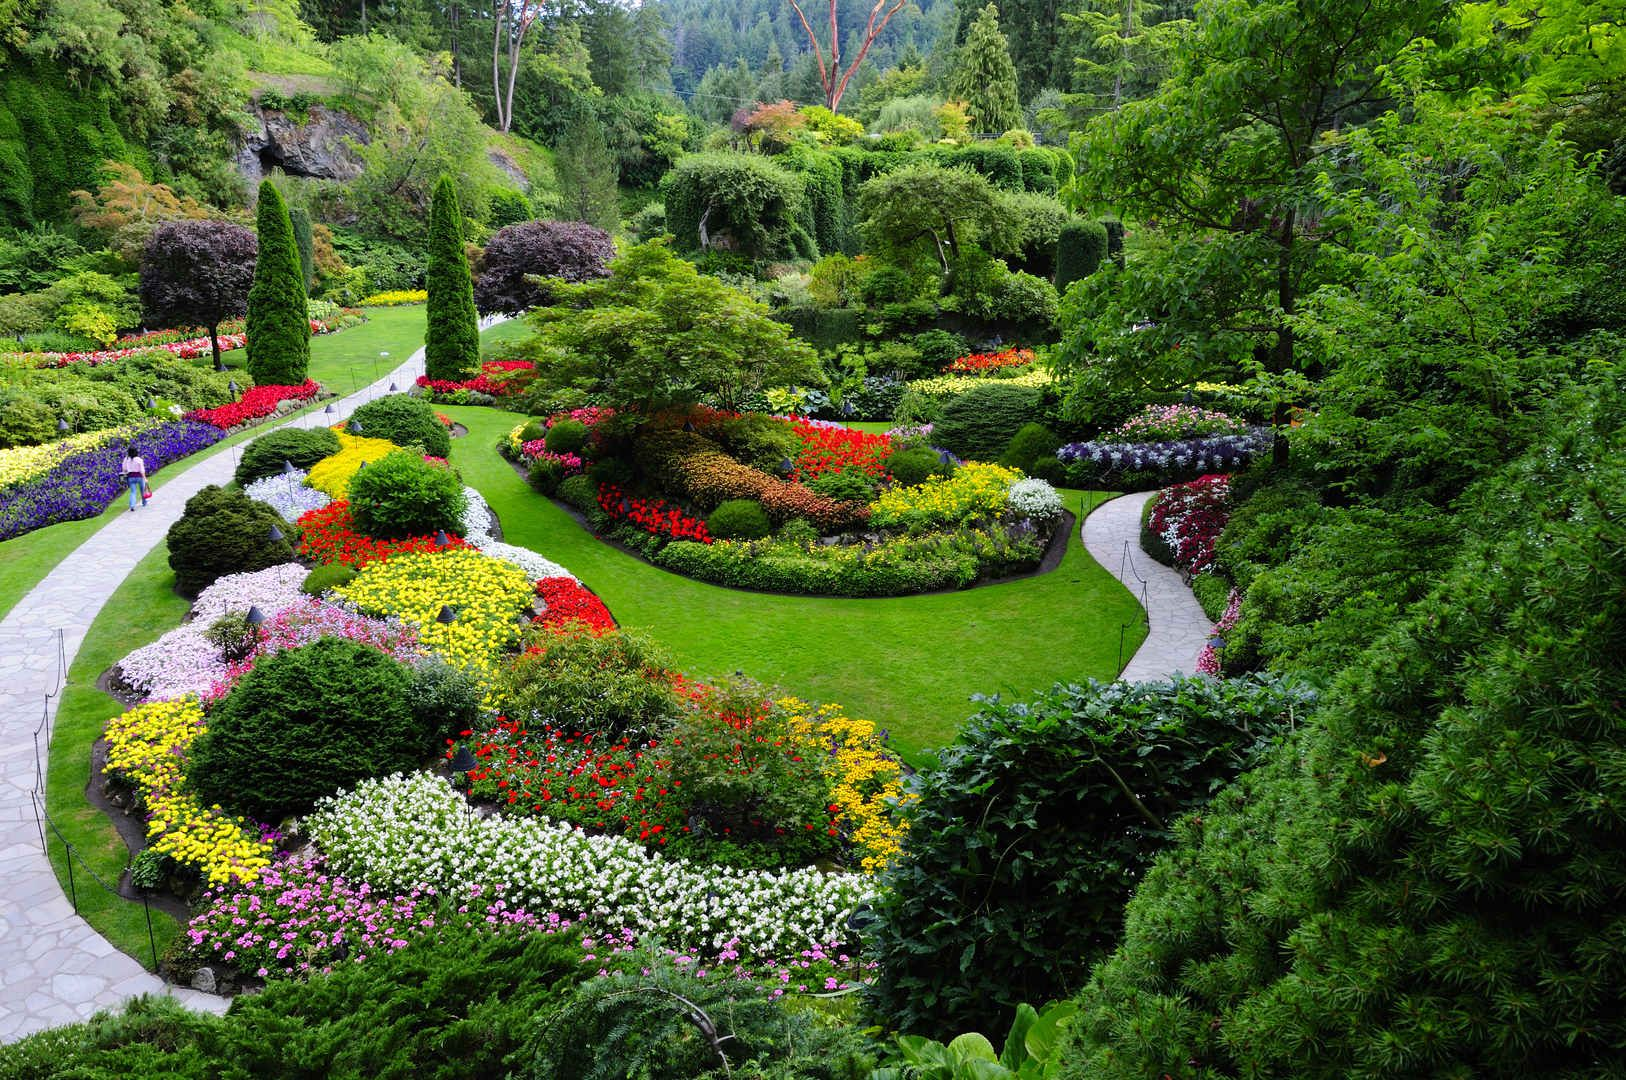 f9bdd0e8530b543d600f9e3e1eb2abbc - How To Get To Butchart Gardens From Vancouver Bc